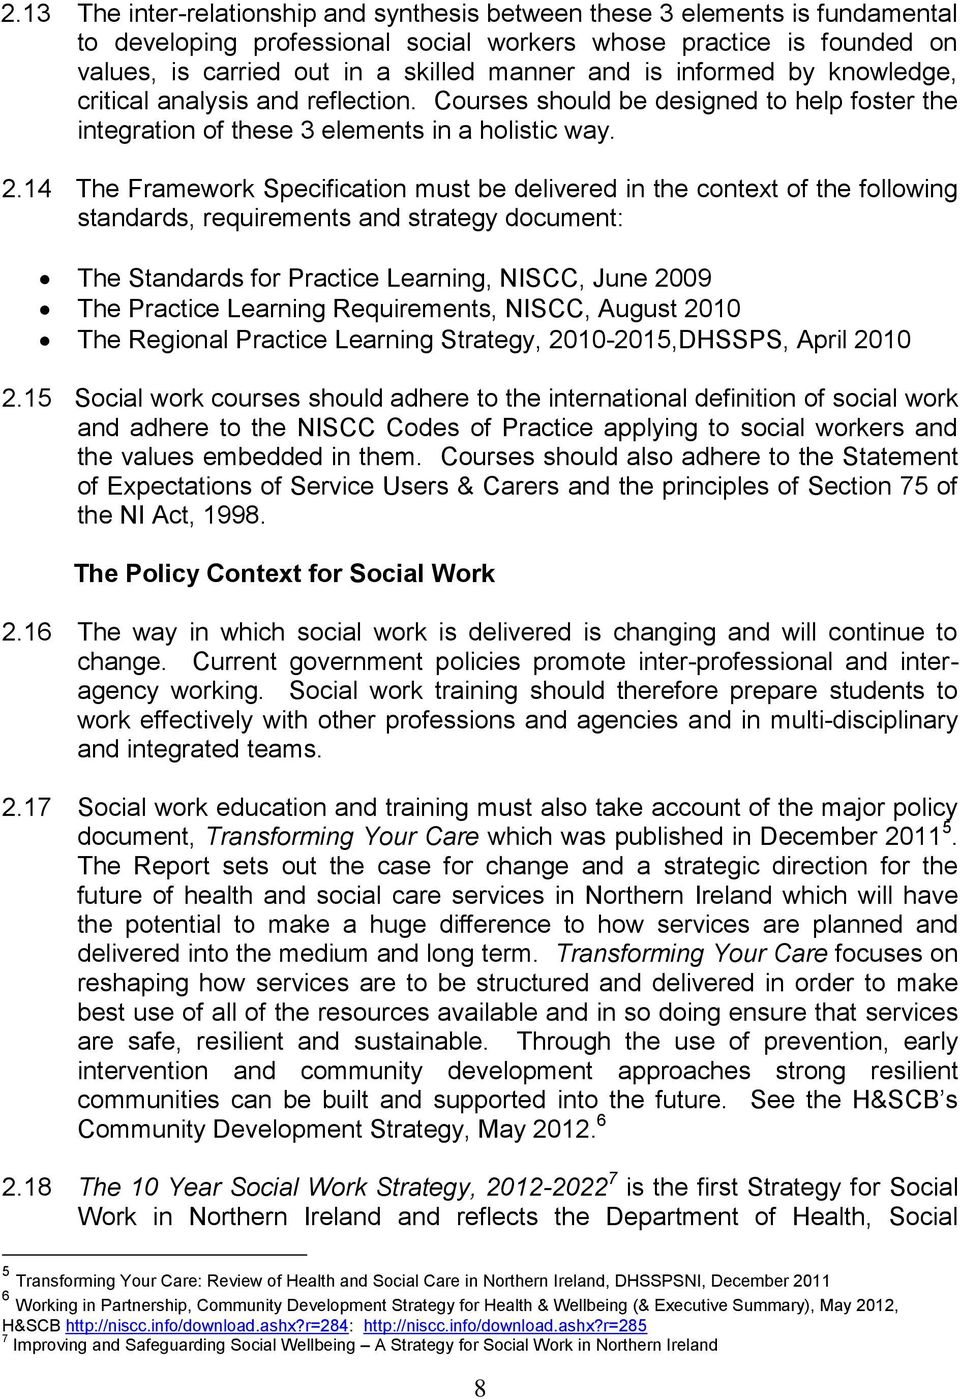 14 The Framework Specification must be delivered in the context of the following standards, requirements and strategy document: The Standards for Practice Learning, NISCC, June 2009 The Practice